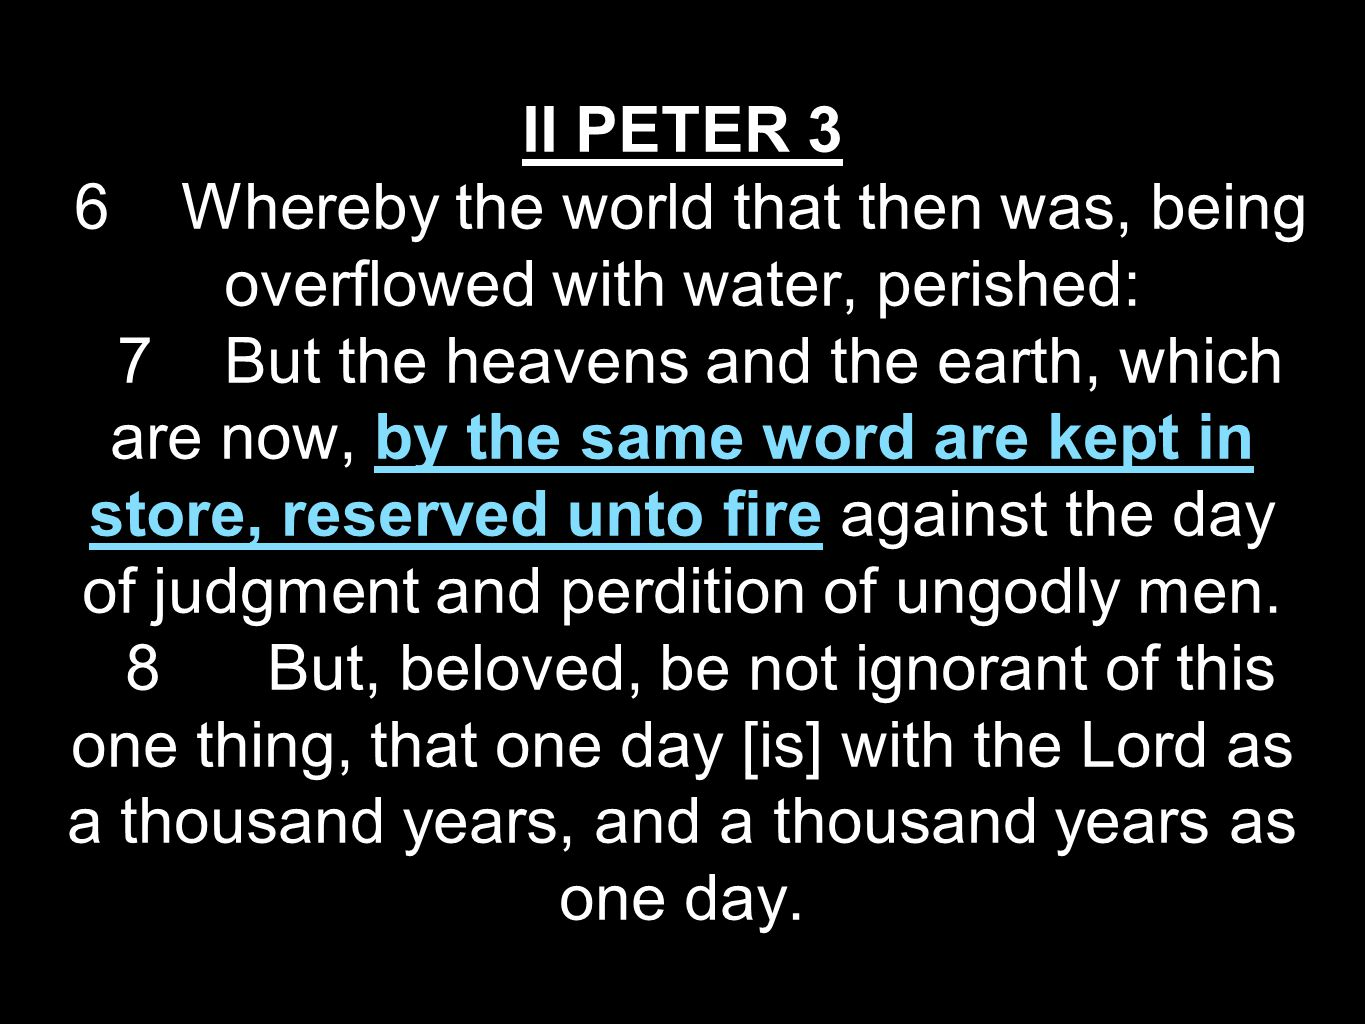 II PETER 3 6 Whereby the world that then was, being overflowed with water, perished: 7 But the heavens and the earth, which are now, by the same word are kept in store, reserved unto fire against the day of judgment and perdition of ungodly men.